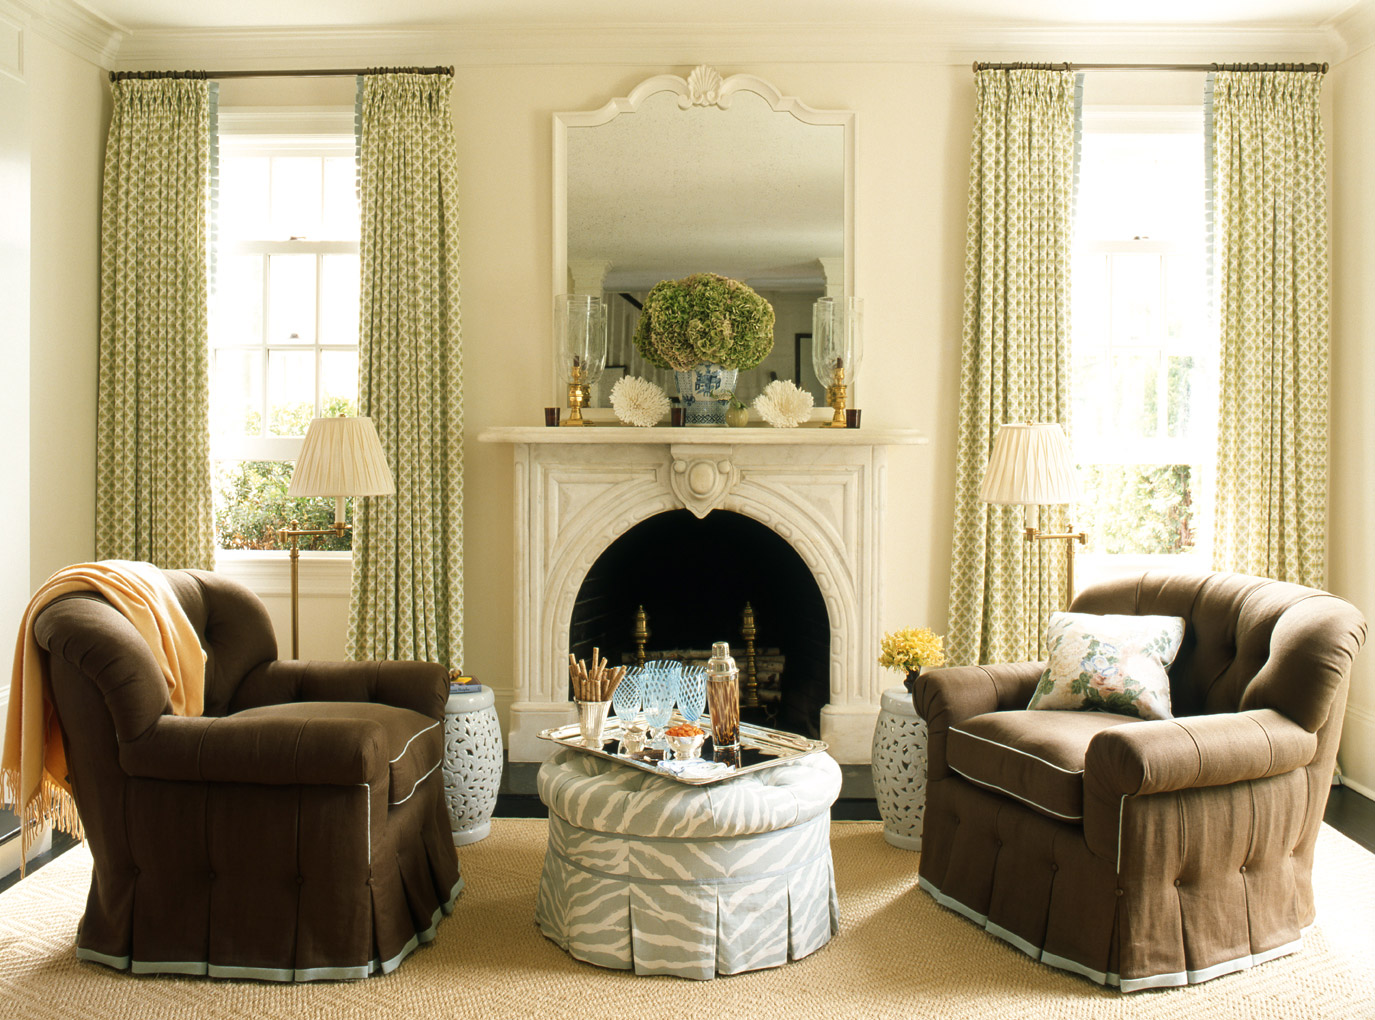 How to decorate series finding your decorating style for Classic design style